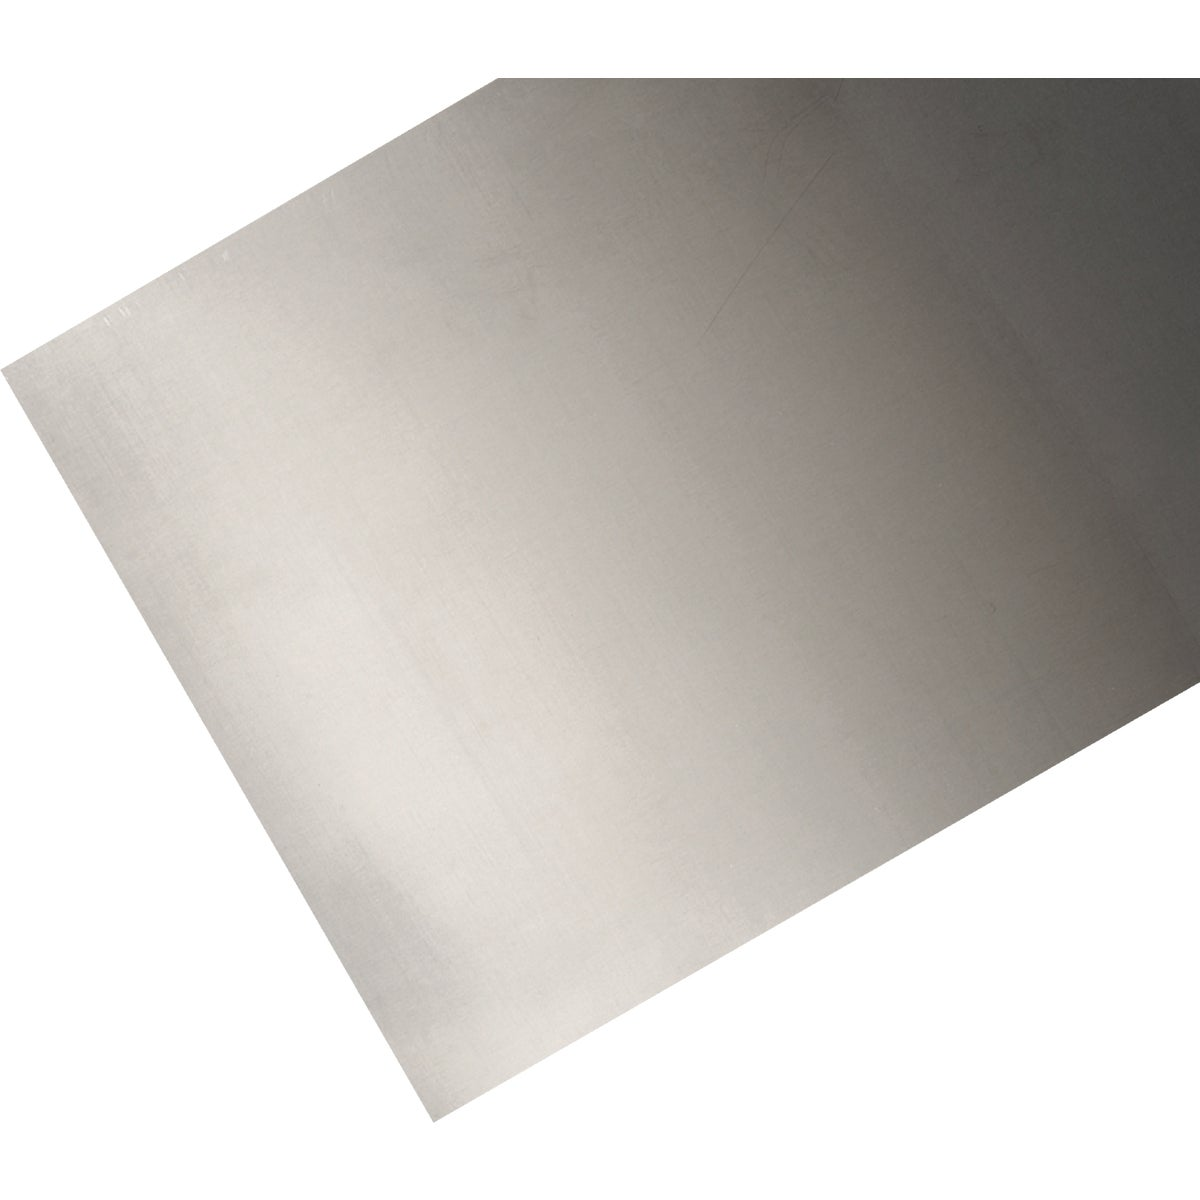 3X2 GALV STEEL SHEET - 57836 by M D Building Prod